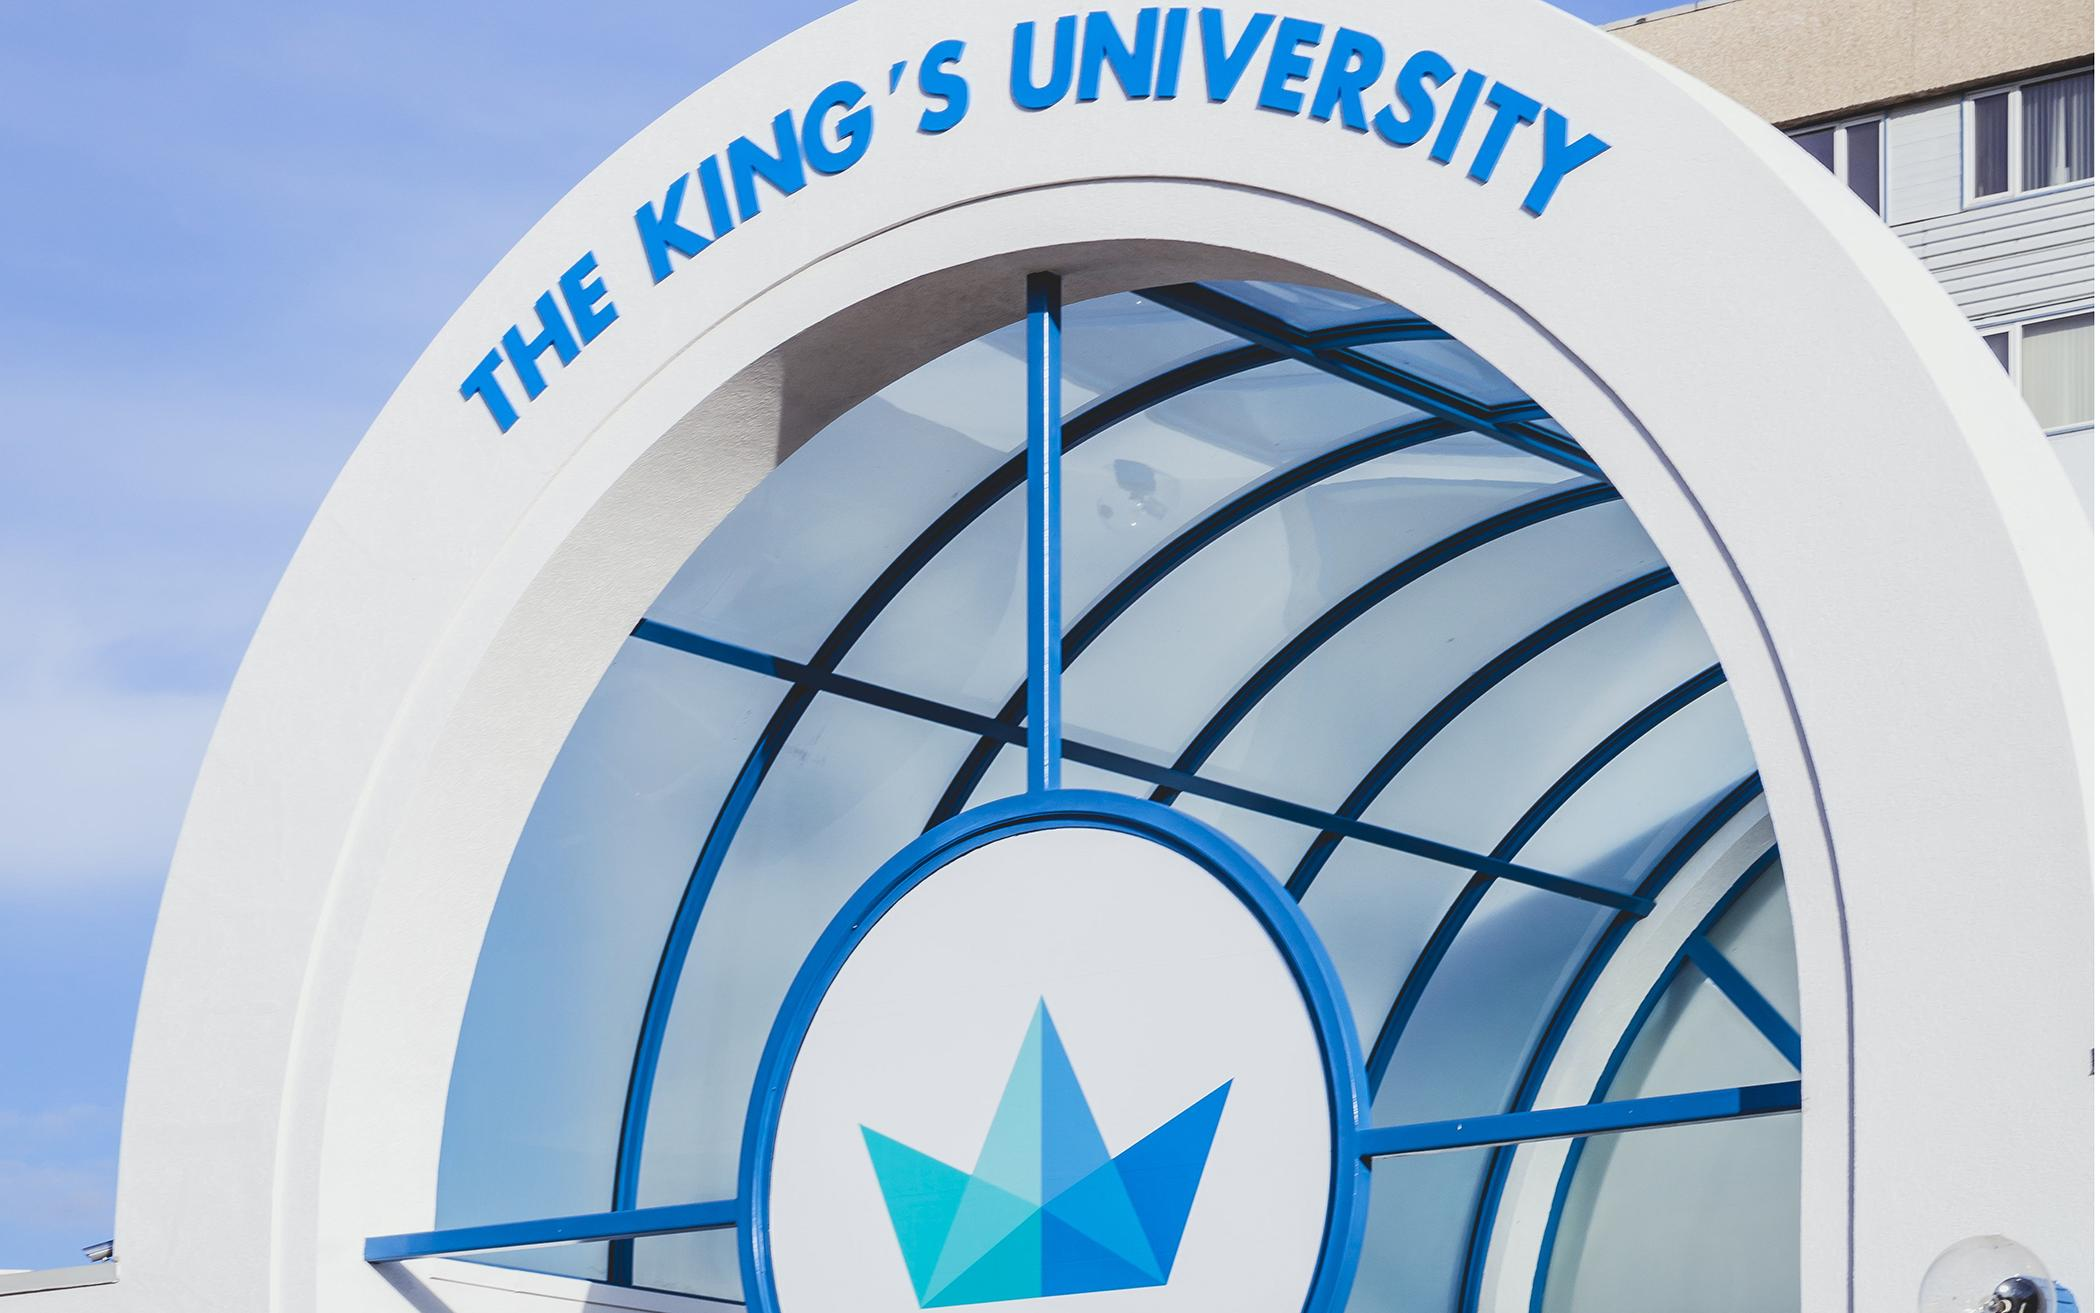 King's University Responds to Supporters Over LGBTQ Concerns